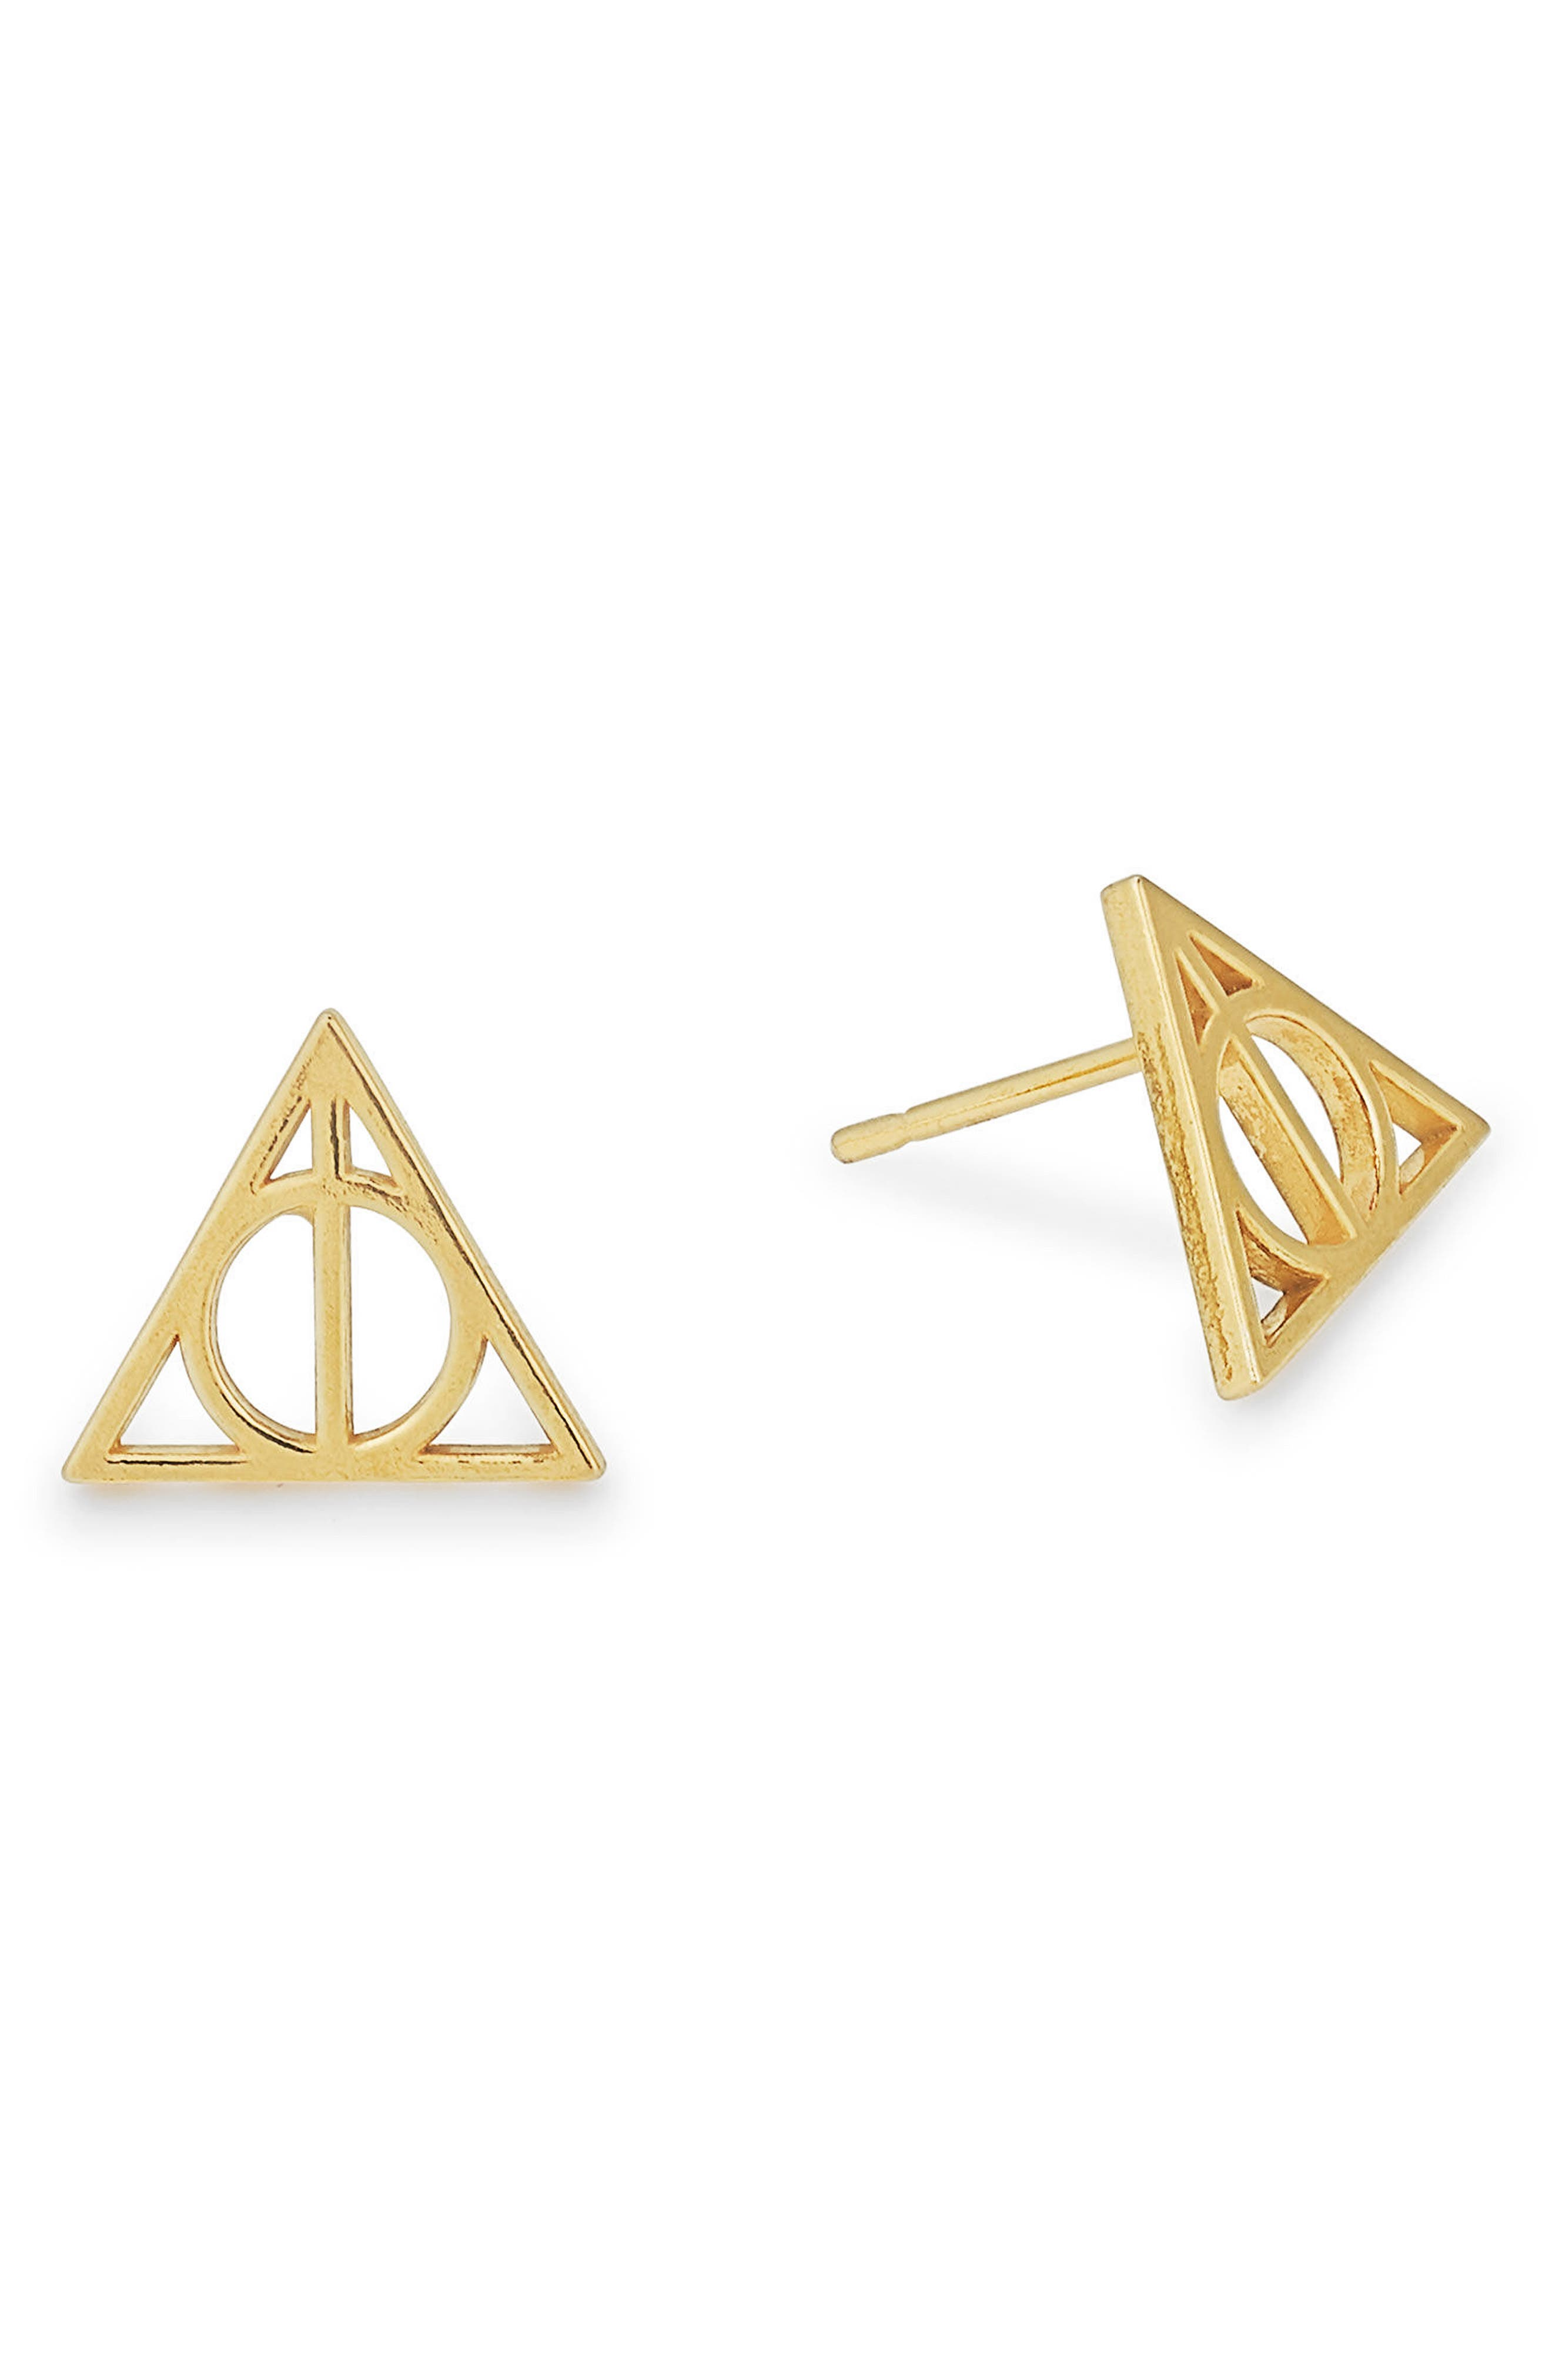 Harry Potter<sup>™</sup> Deathly Hallows<sup>™</sup> Earrings,                             Main thumbnail 1, color,                             Gold